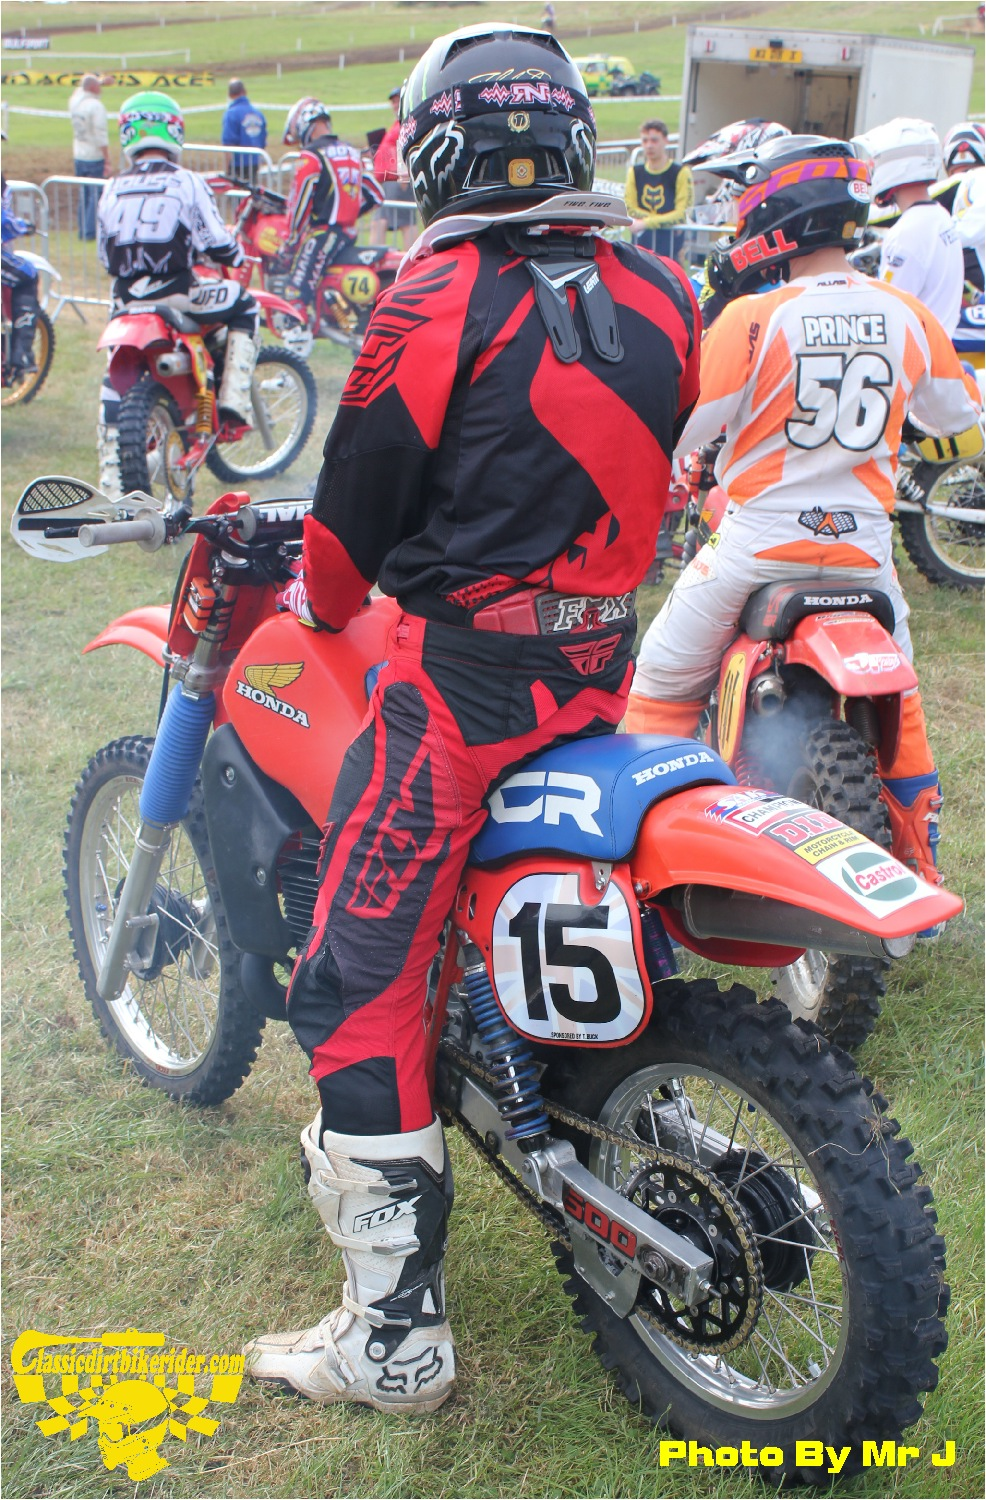 king of the castle 2015 photos Farleigh Castle twinshock motocross classicdirtbikerider.com 22